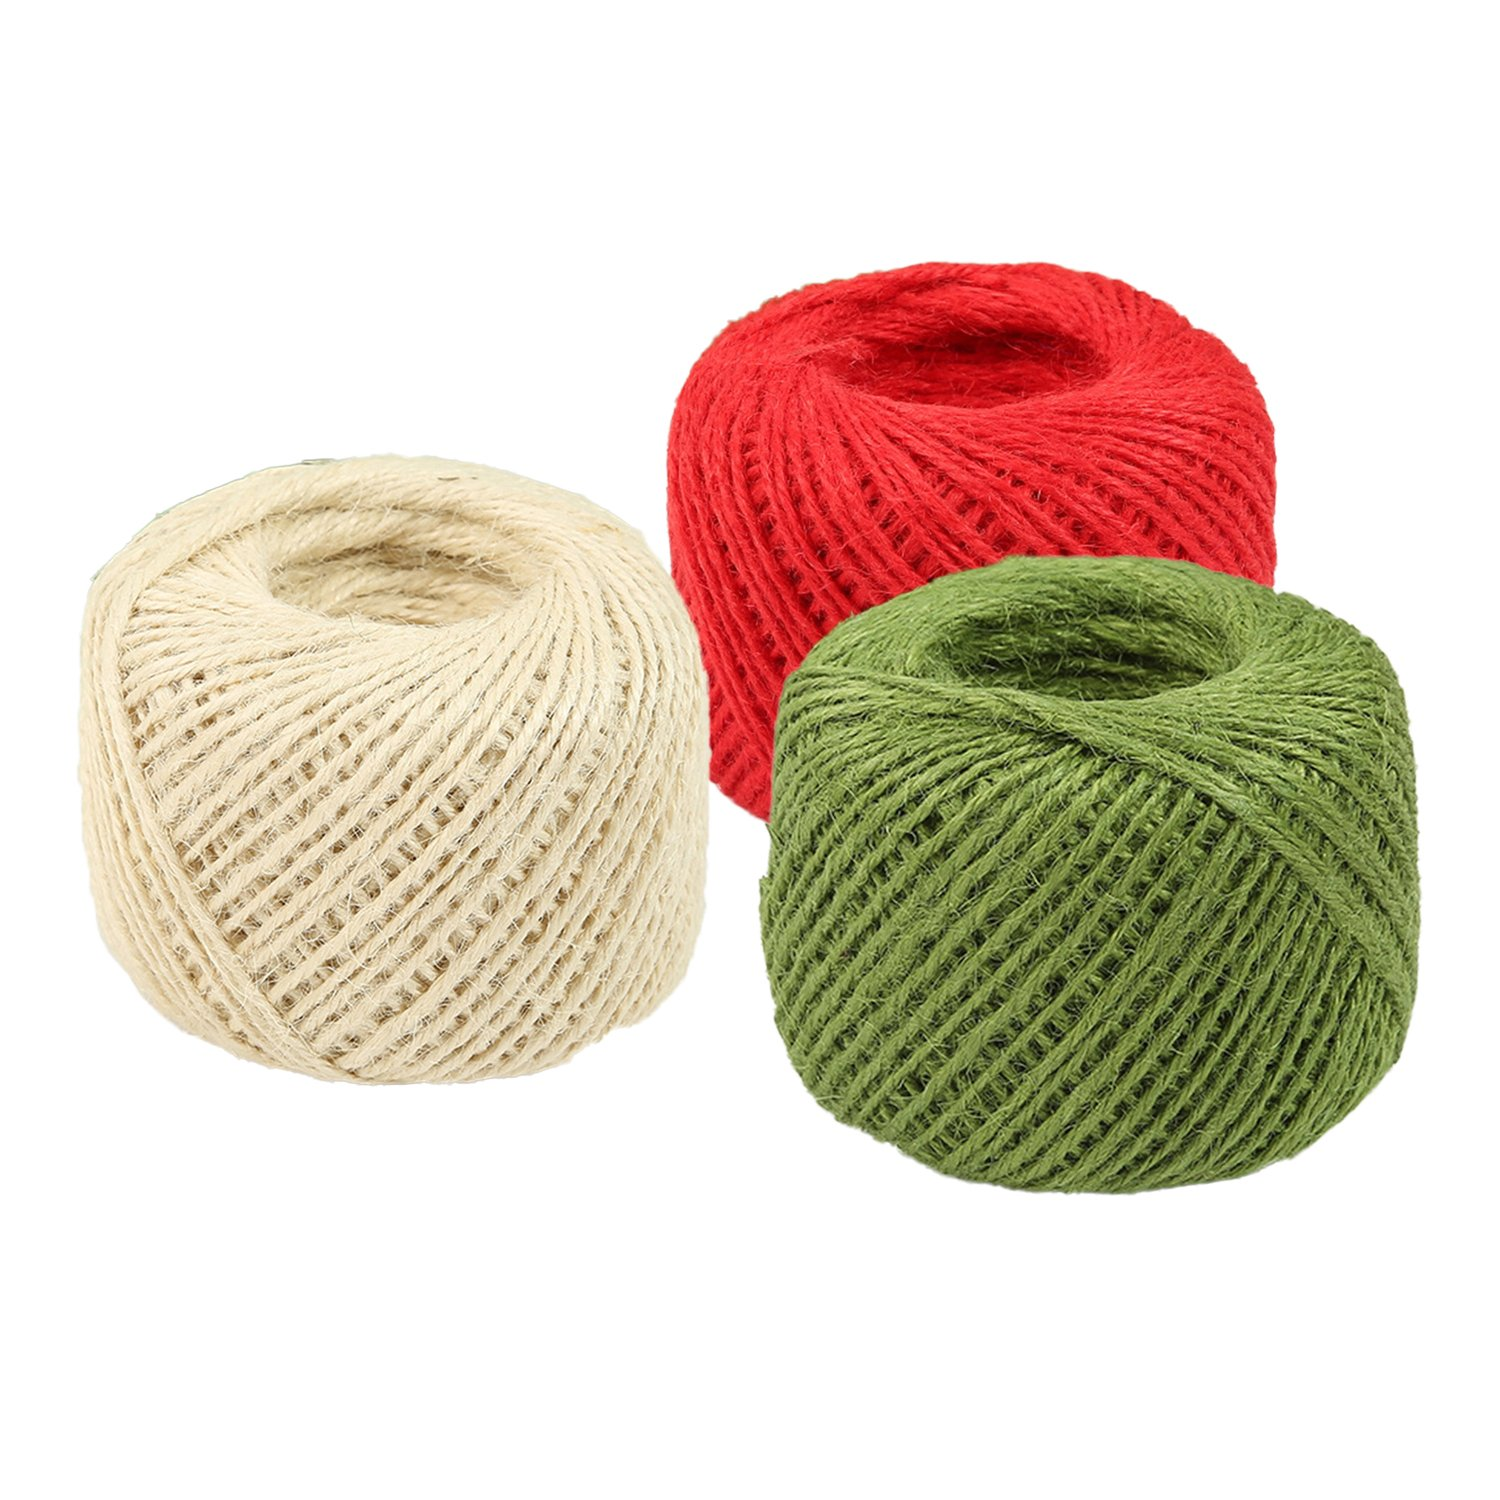 Coxeer 3 Roll Jute Twine Jute String Natural Handmade Colorful Jute Rope for DIY Art Craft Gift Wrapping